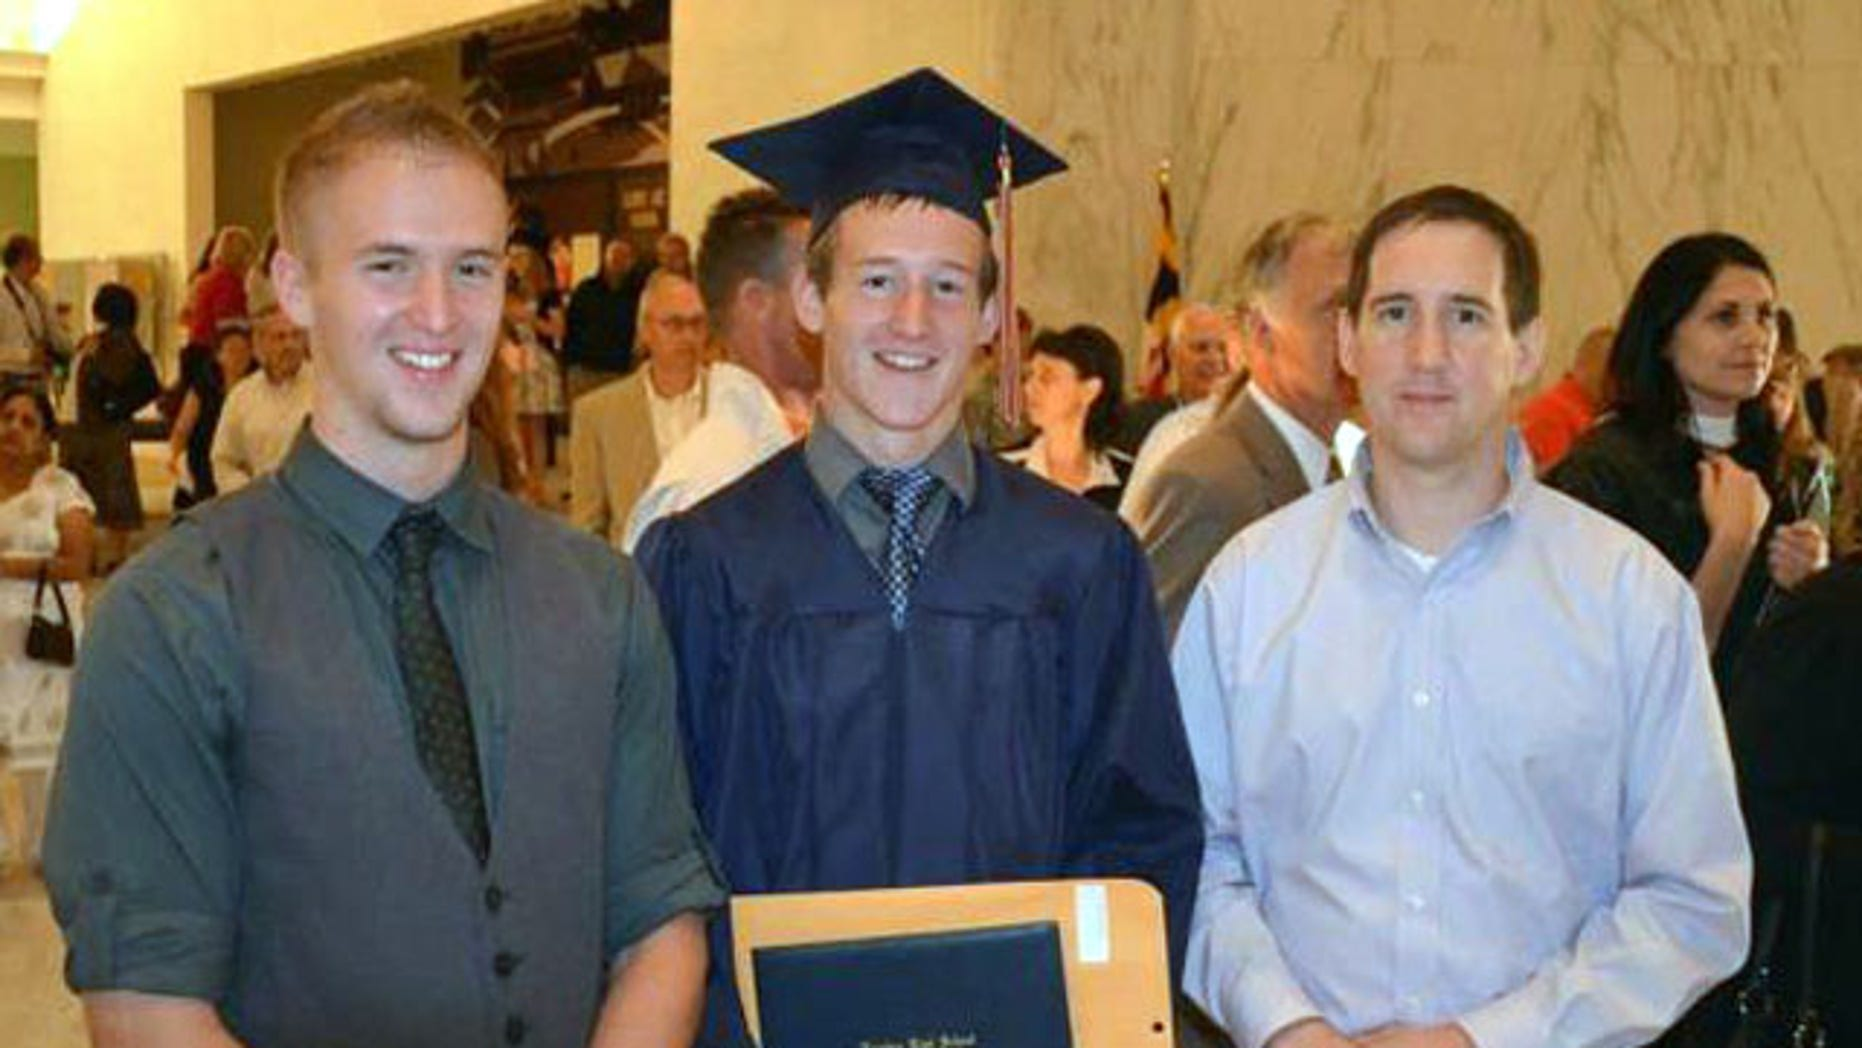 June 9, 2012: Justin Strine, left, poses with his younger brother Jamie Strine, center, and older brother, Jim Strine, at Jamies high school graduation in Hershey, PA. Justin Strine's hopes for a military career as an Army officer ended after he was kicked out from ROTC for participating in a riot at Penn State after Hall of Fame coach Joe Paterno's firing in November 2011. (AP)